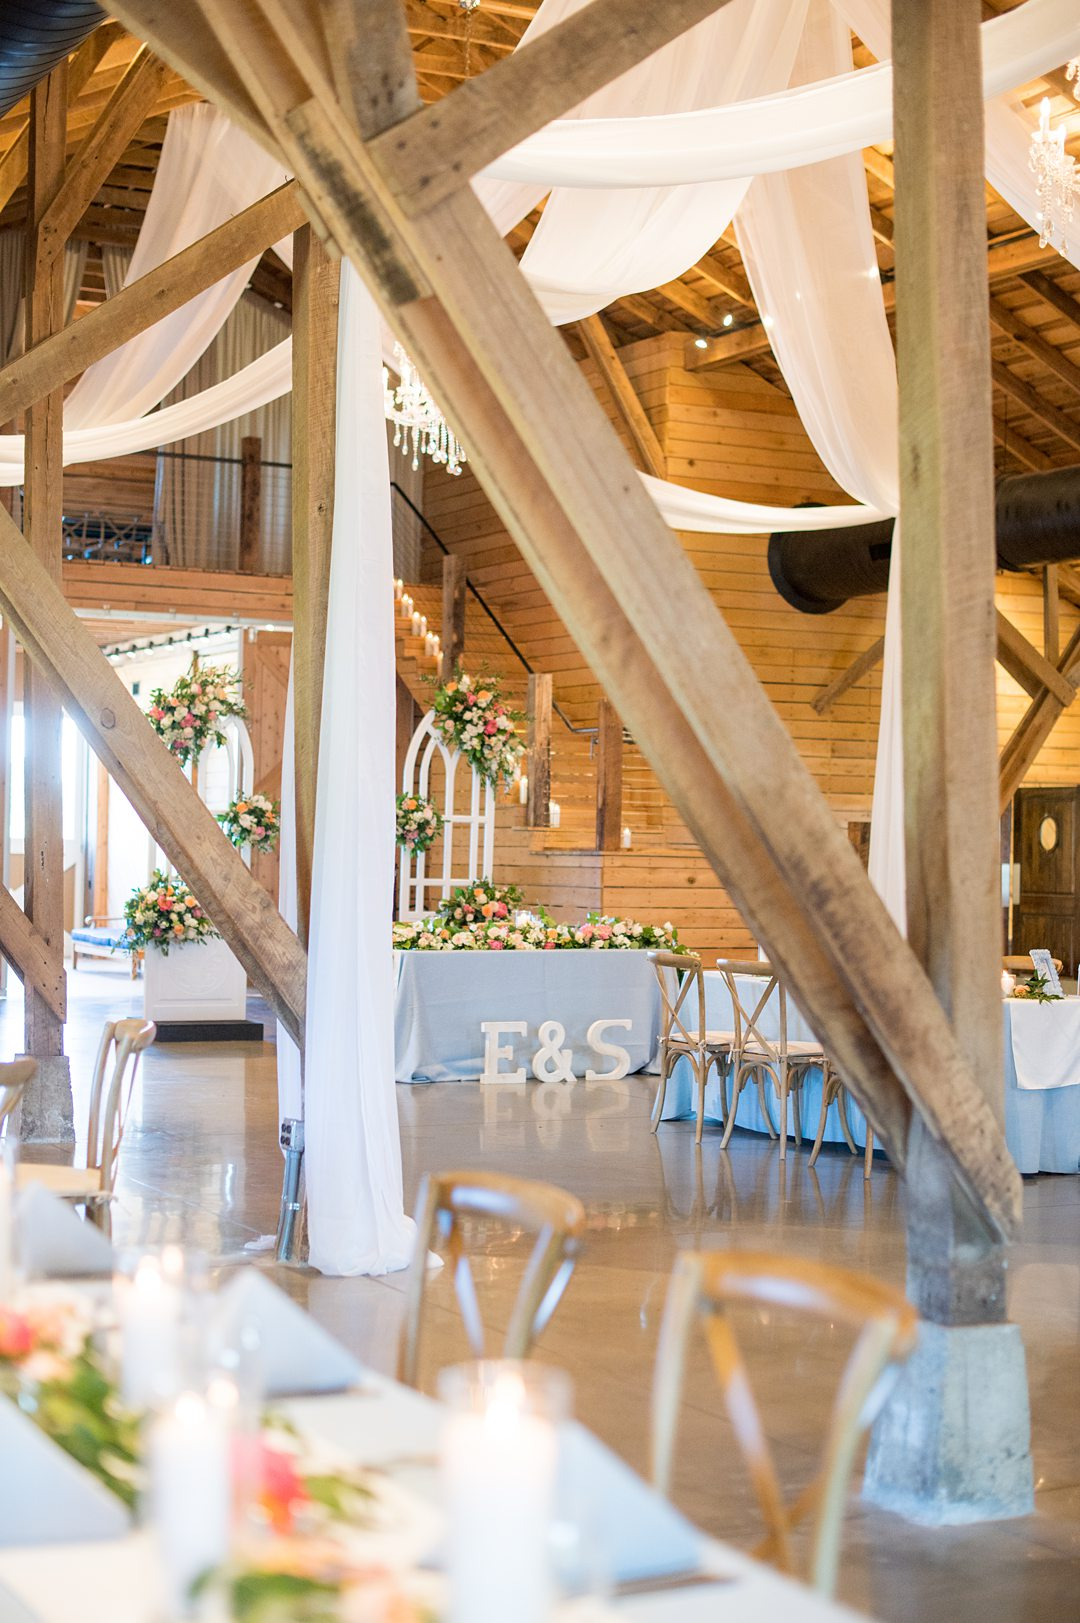 A socially distanced small wedding reception in a barn at the Lodge at Mount Ida Farm, in Charlottesville, VA. Photos by Mikkel Paige Photography. #mikkelpaige #covidwedding #charlottesvilleva